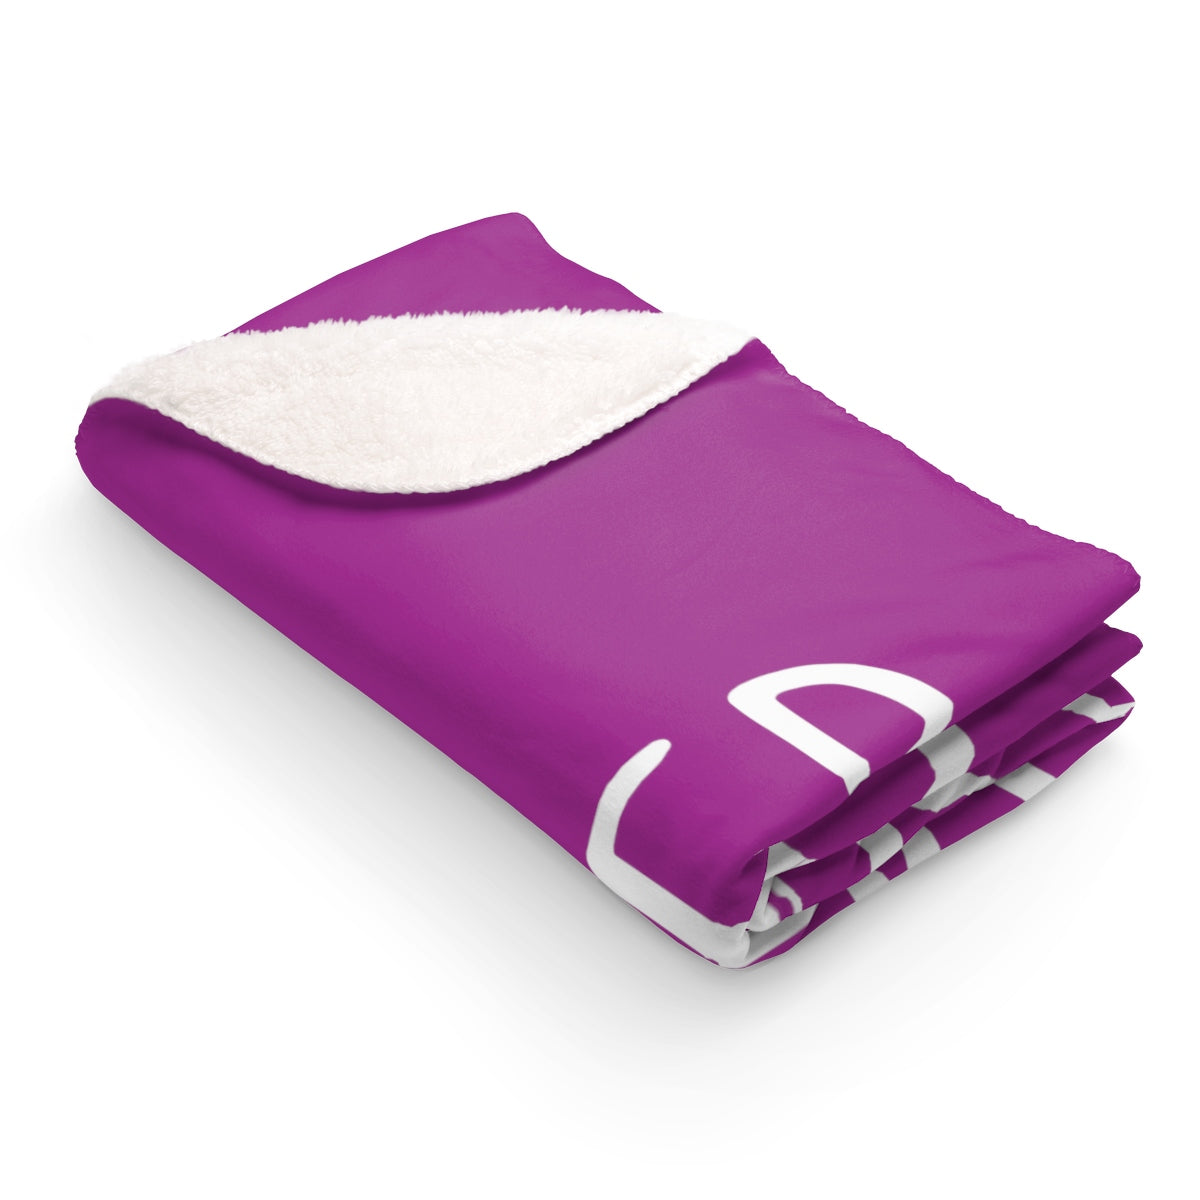 Grover Sherpa Fleece Blanket: Purple